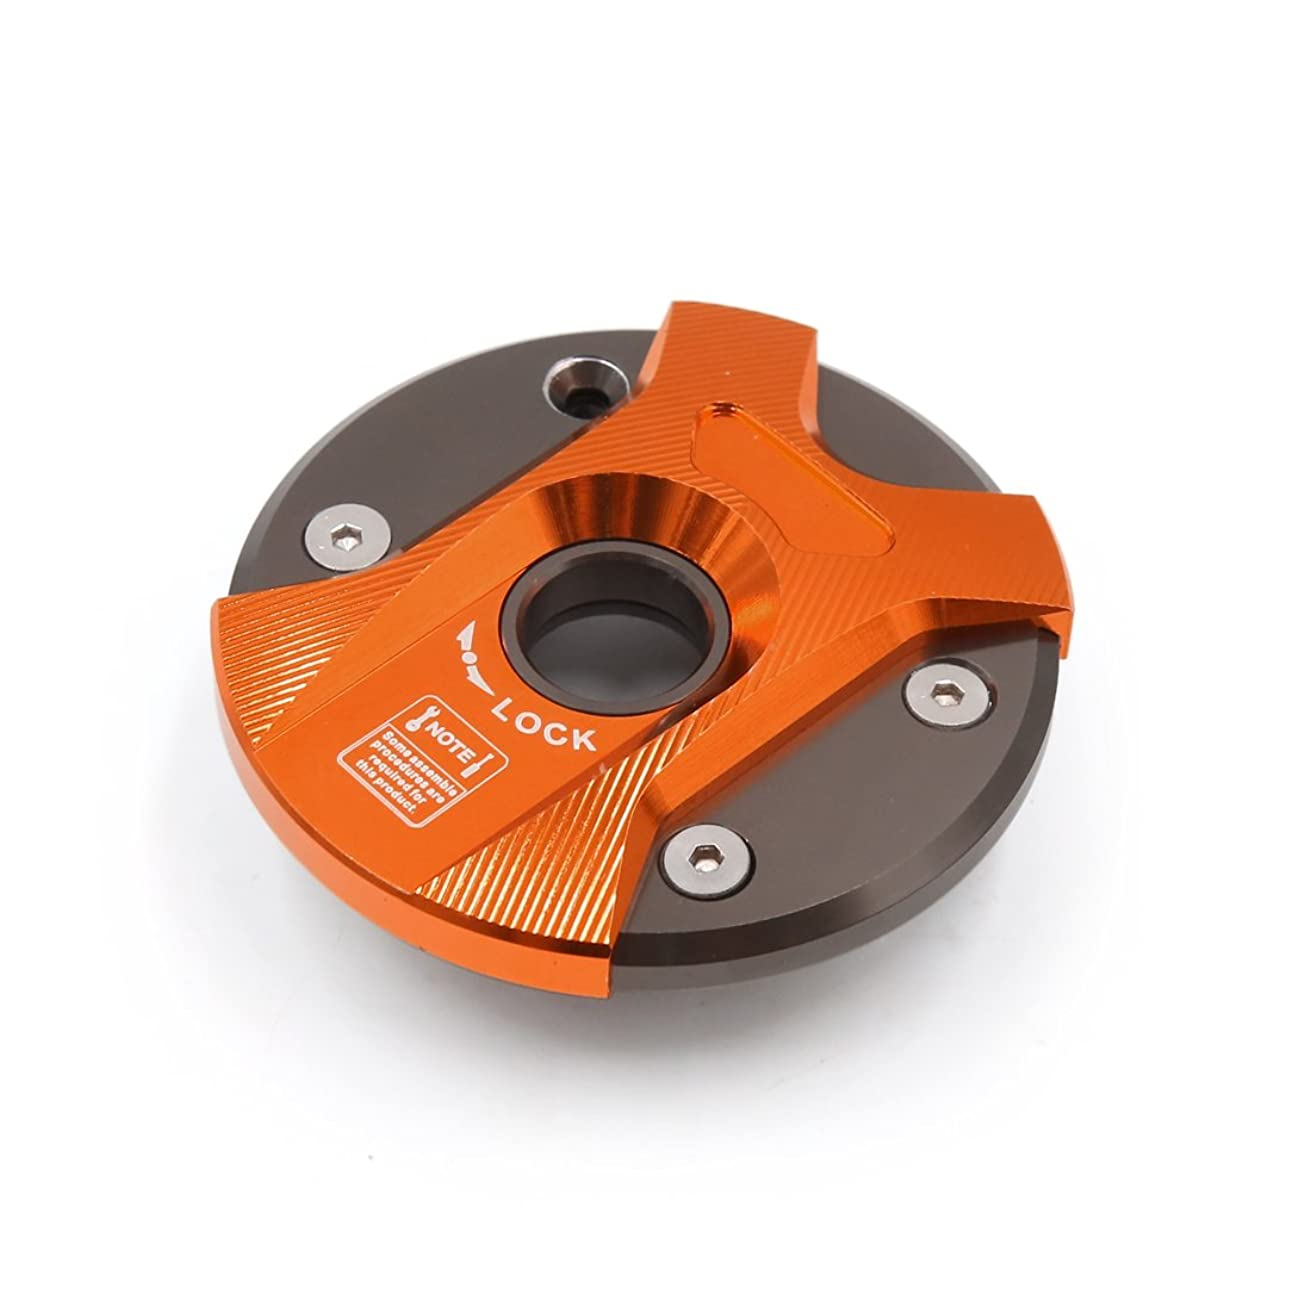 Uxcell a17031000ux2009 Orange Aluminium Alloy Motorcycle Fuel Tank Gas Cap Cover for Yamaha BWS 125 100